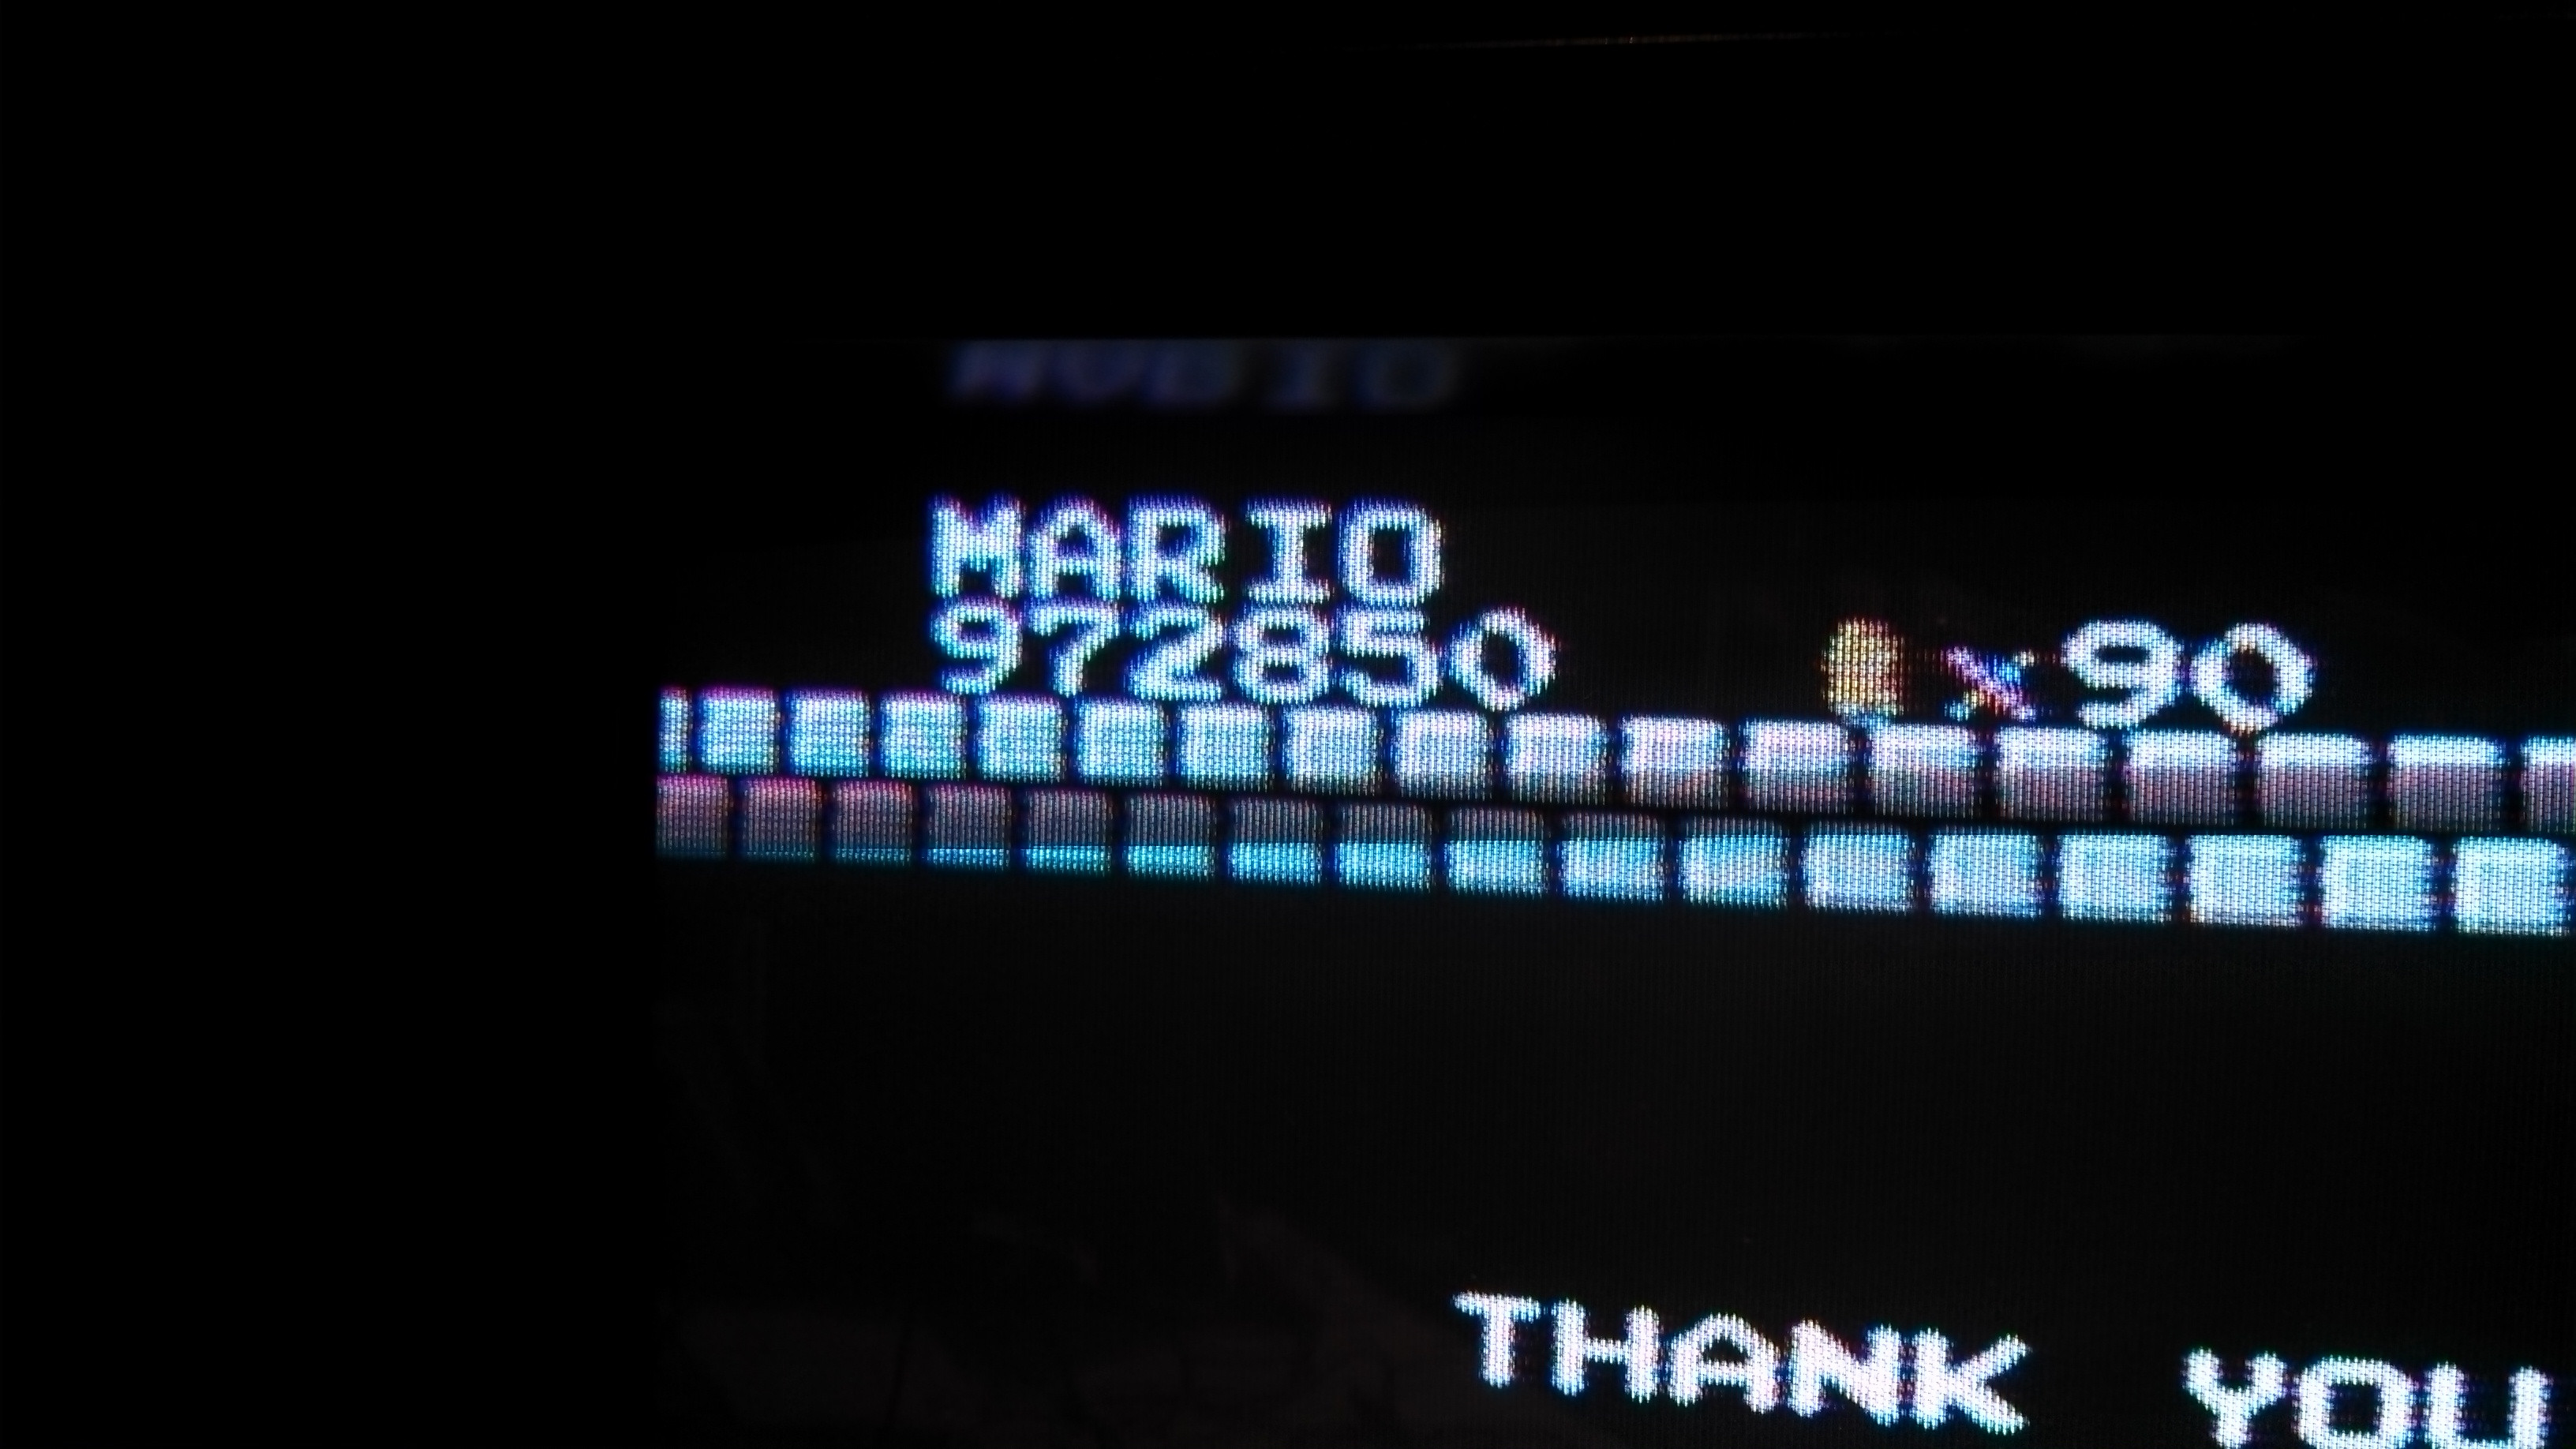 Super Mario Bros. 972,850 points